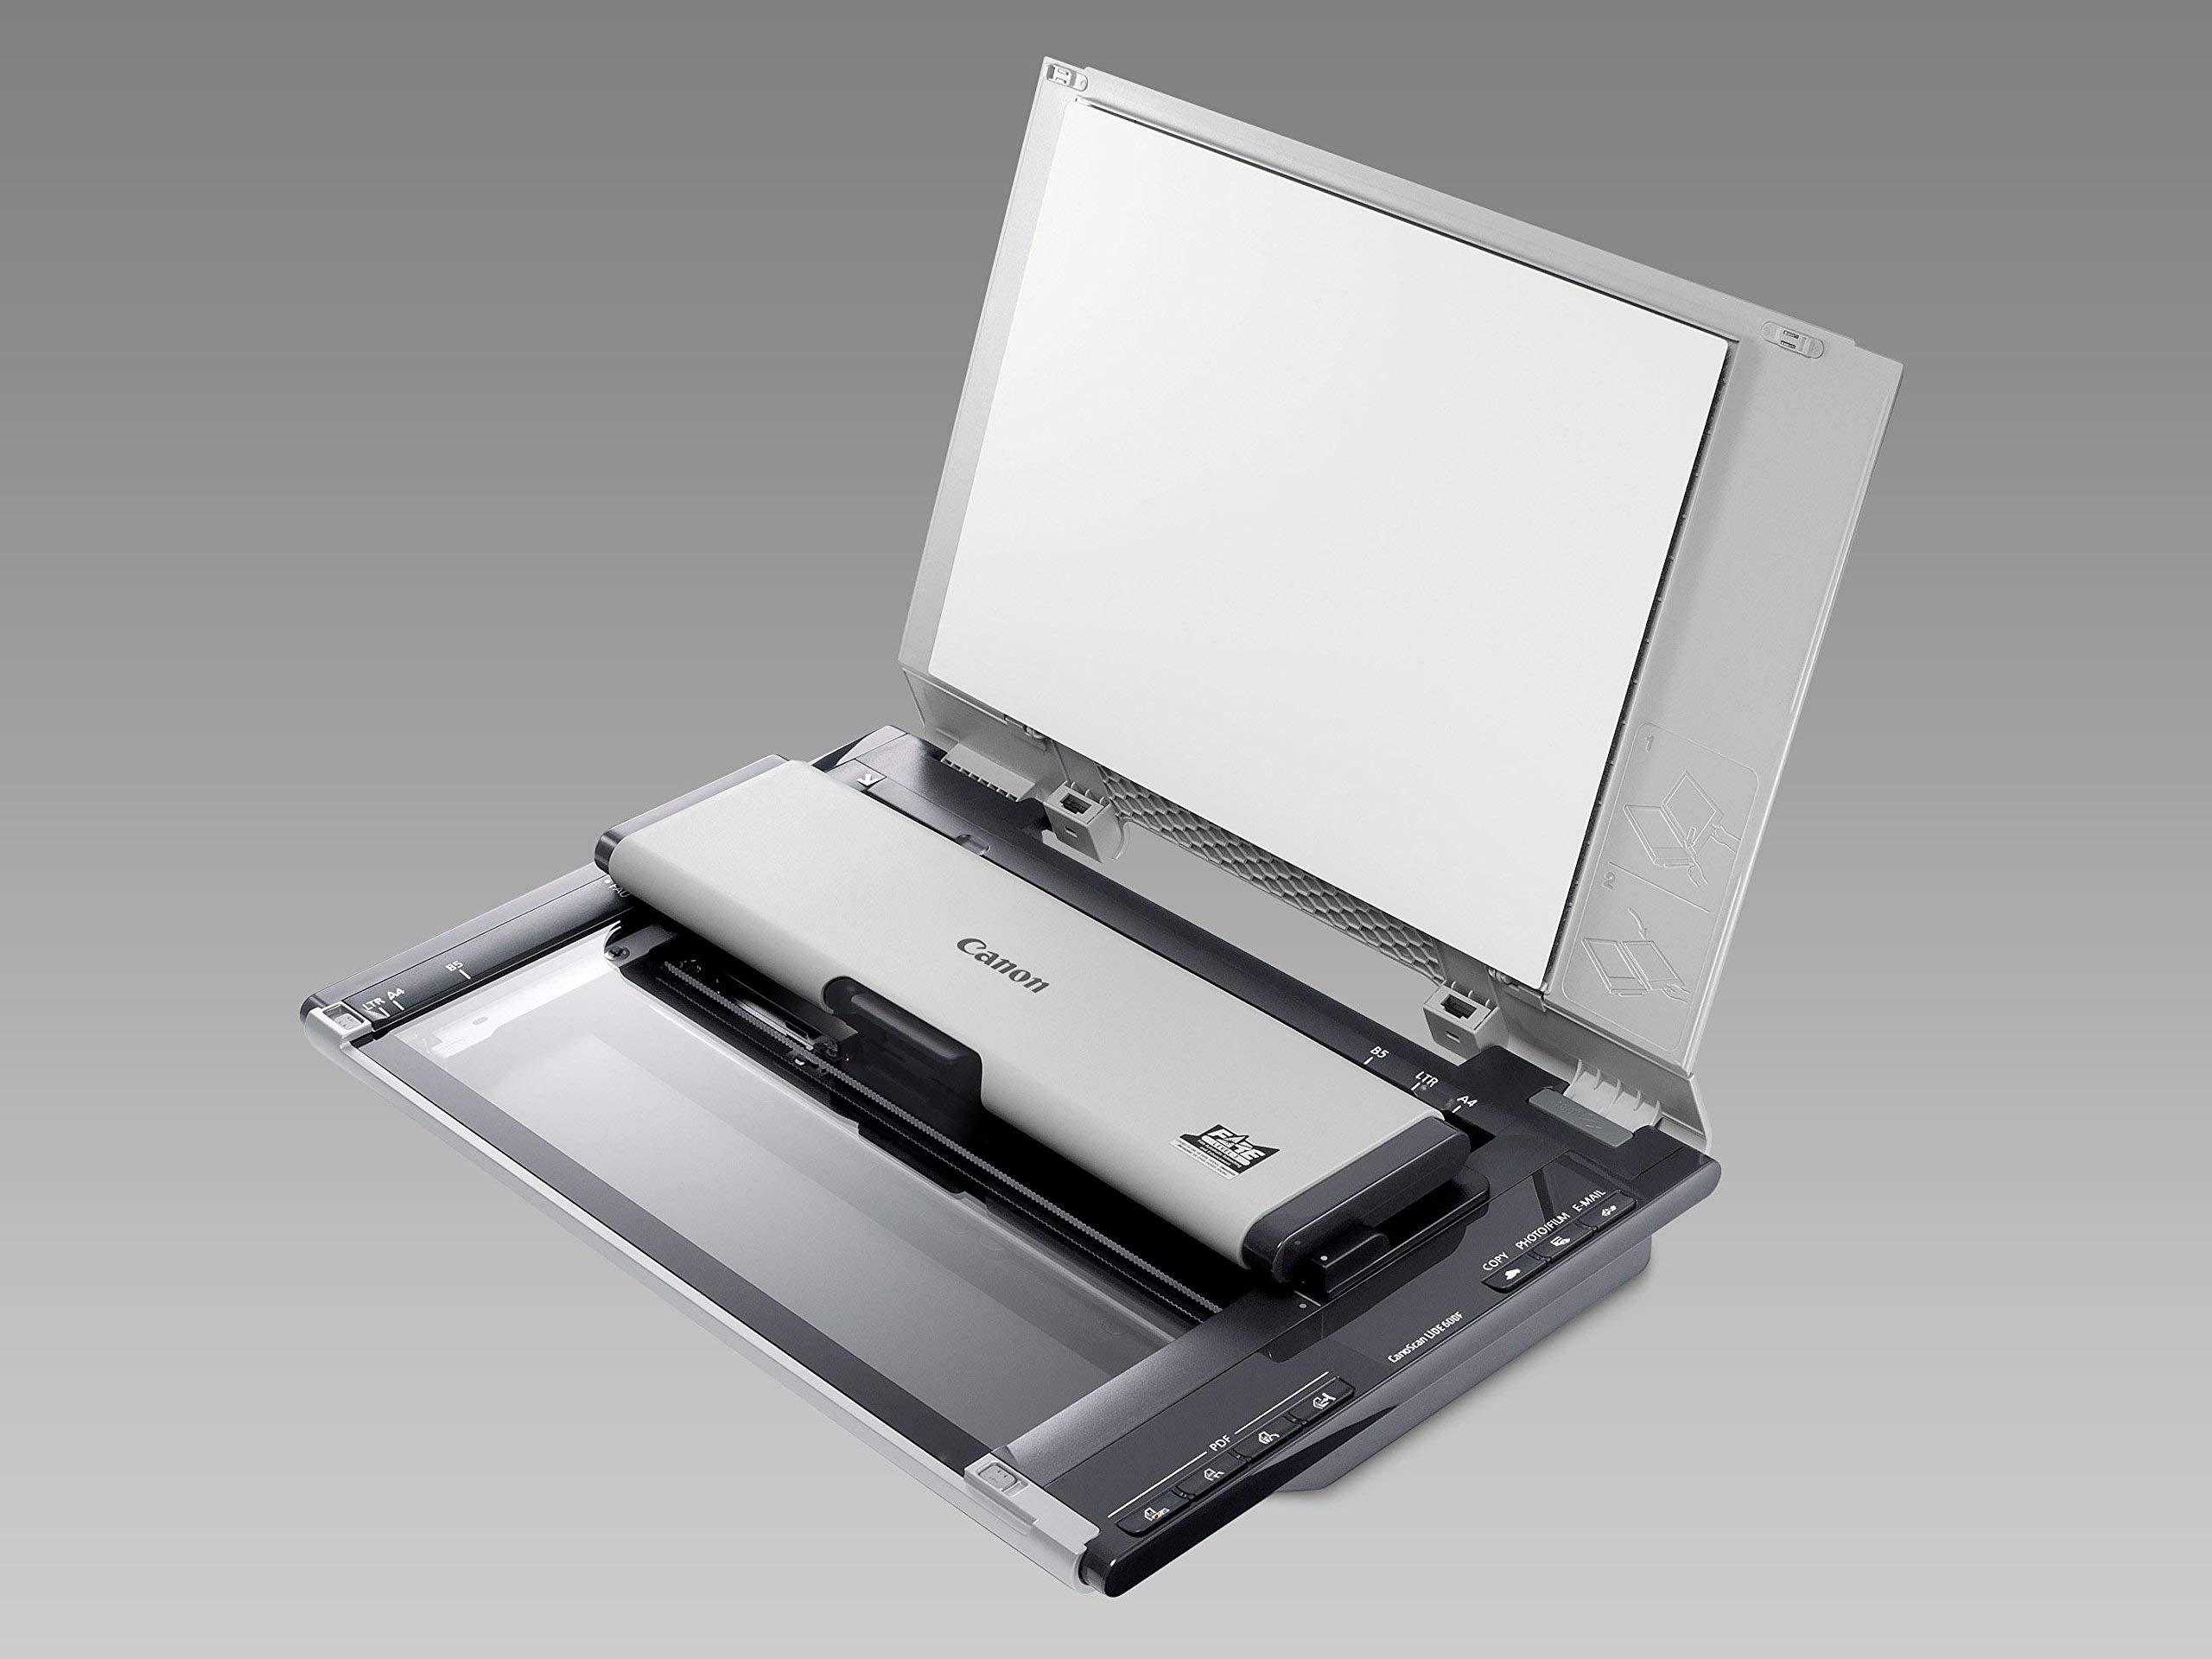 Canon CanoScan LiDE 600F scanner (0302B002) (Renewed)